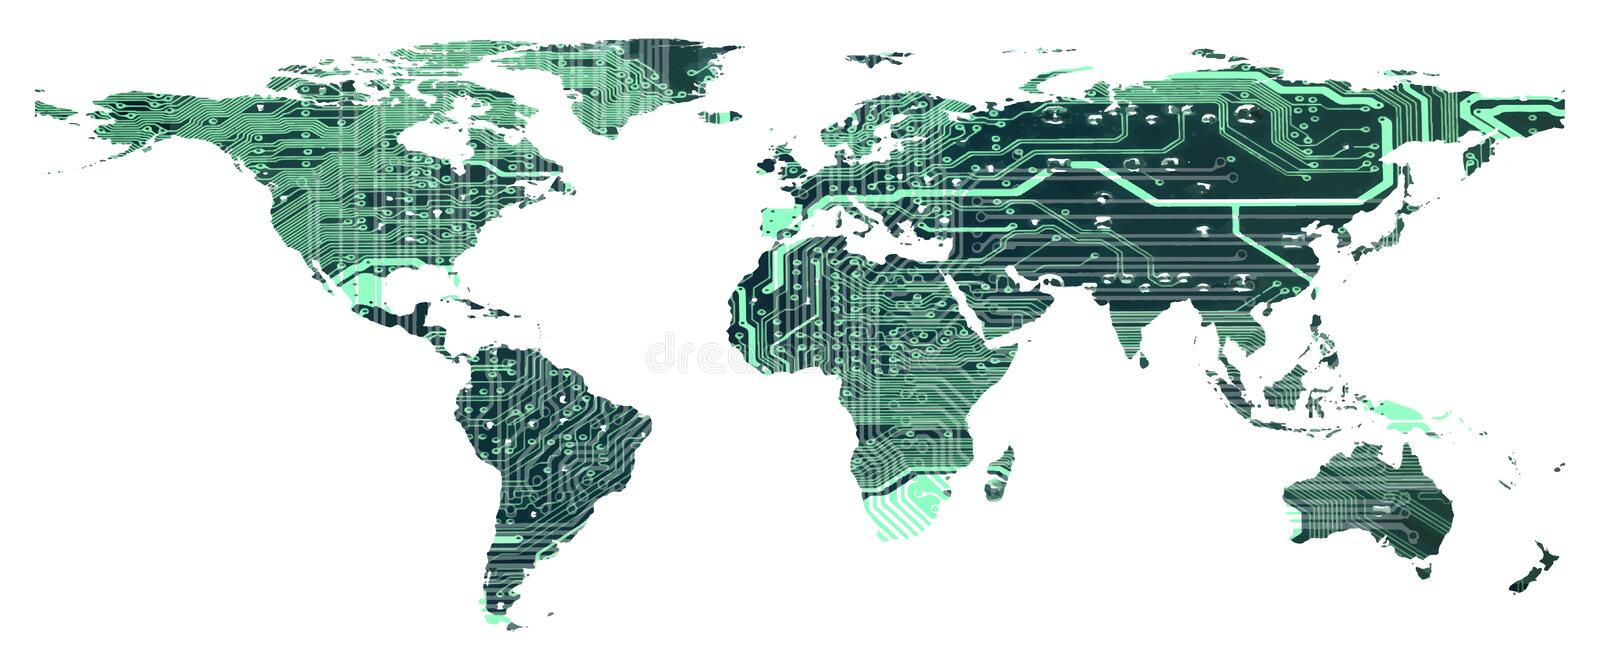 World map with circuit board pattern isolated vector illustration